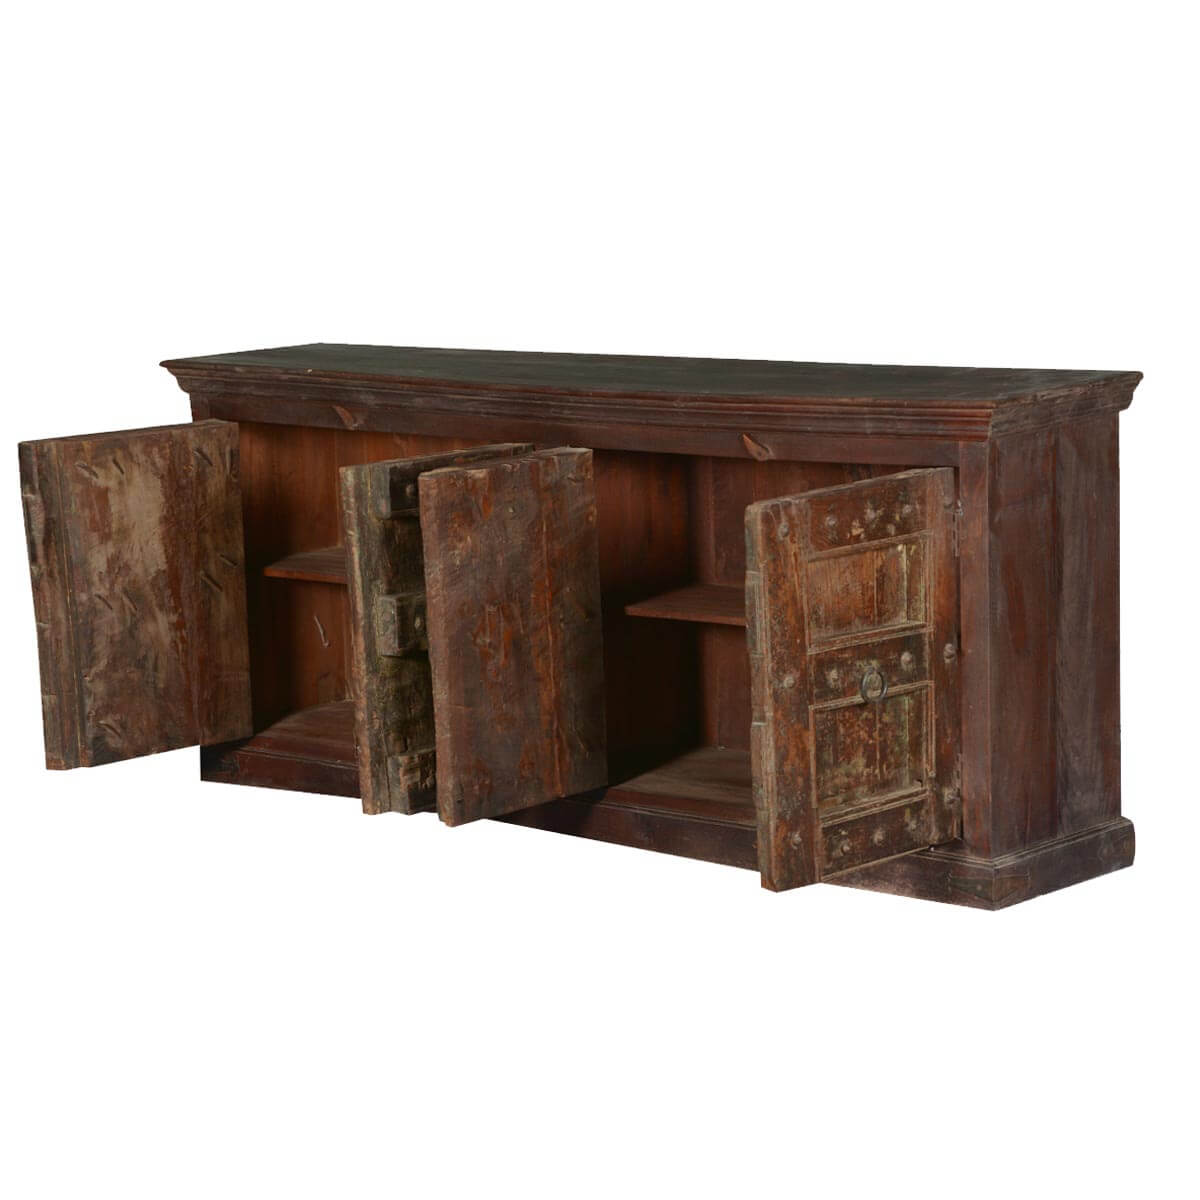 Rustic Gothic Mango amp Reclaimed Wood Sideboard Cabinet : 66533 from sierralivingconcepts.com size 1200 x 1200 jpeg 107kB